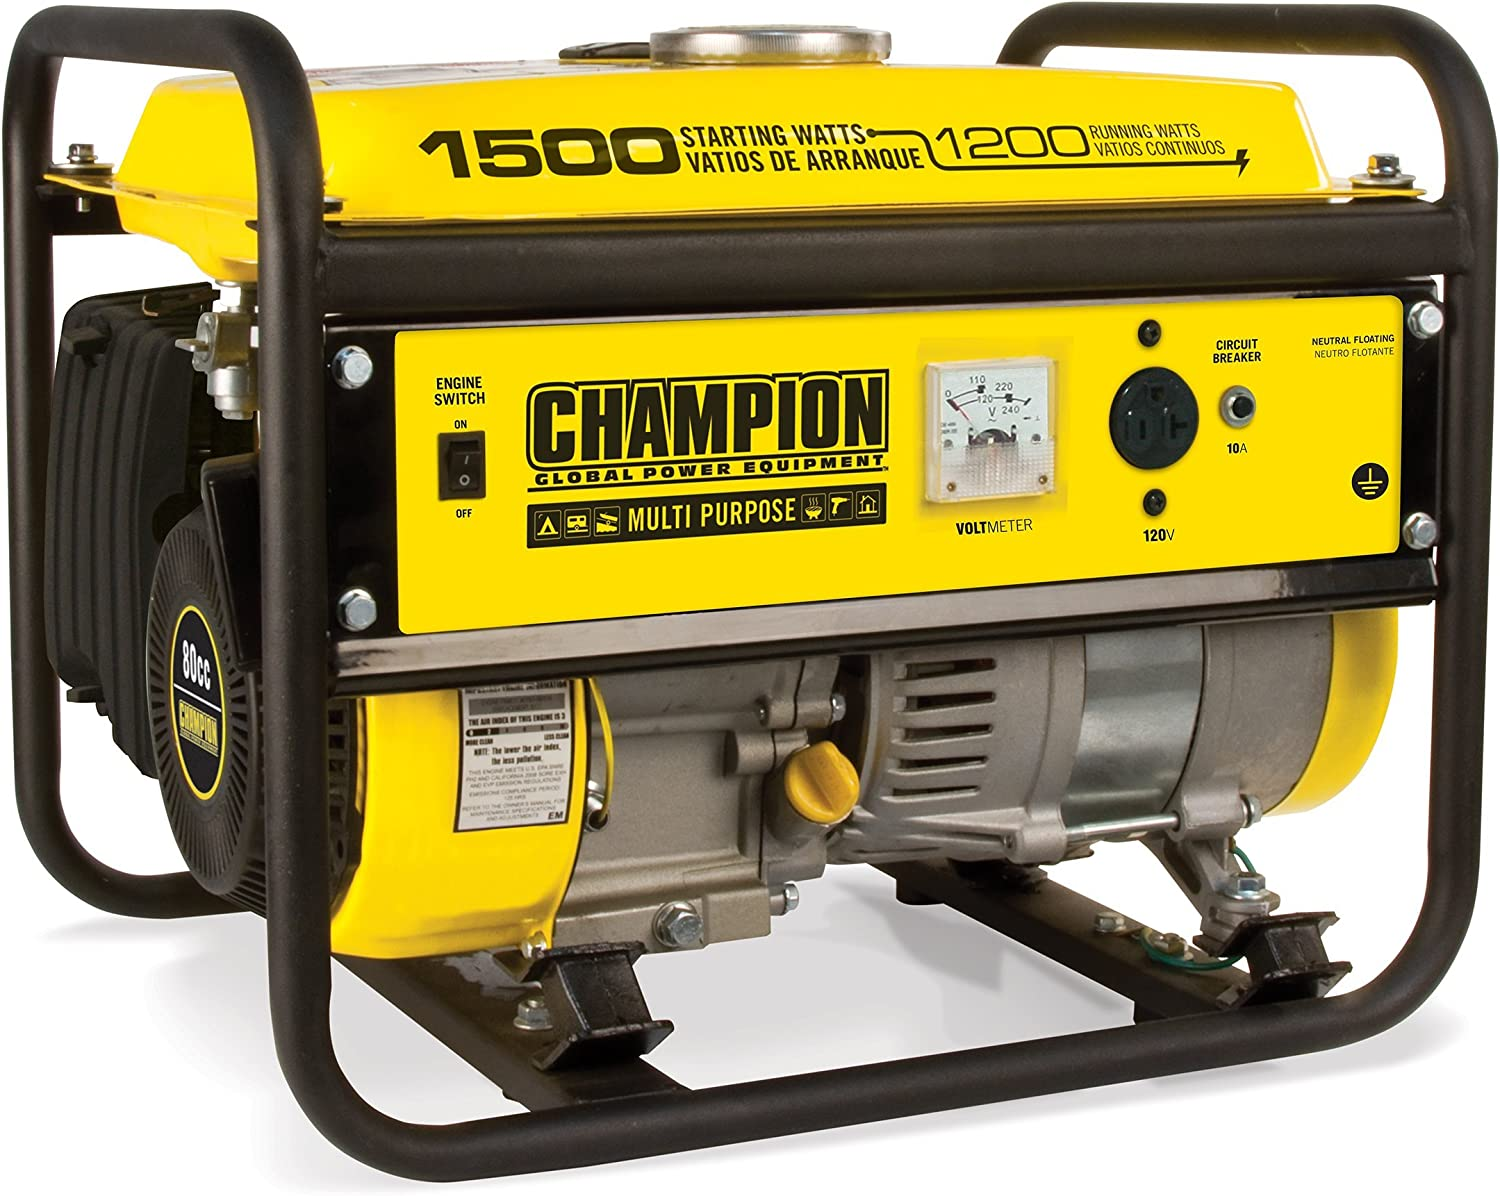 Amazon.com : Champion 1200-Watt Portable Generator : Garden & Outdoor